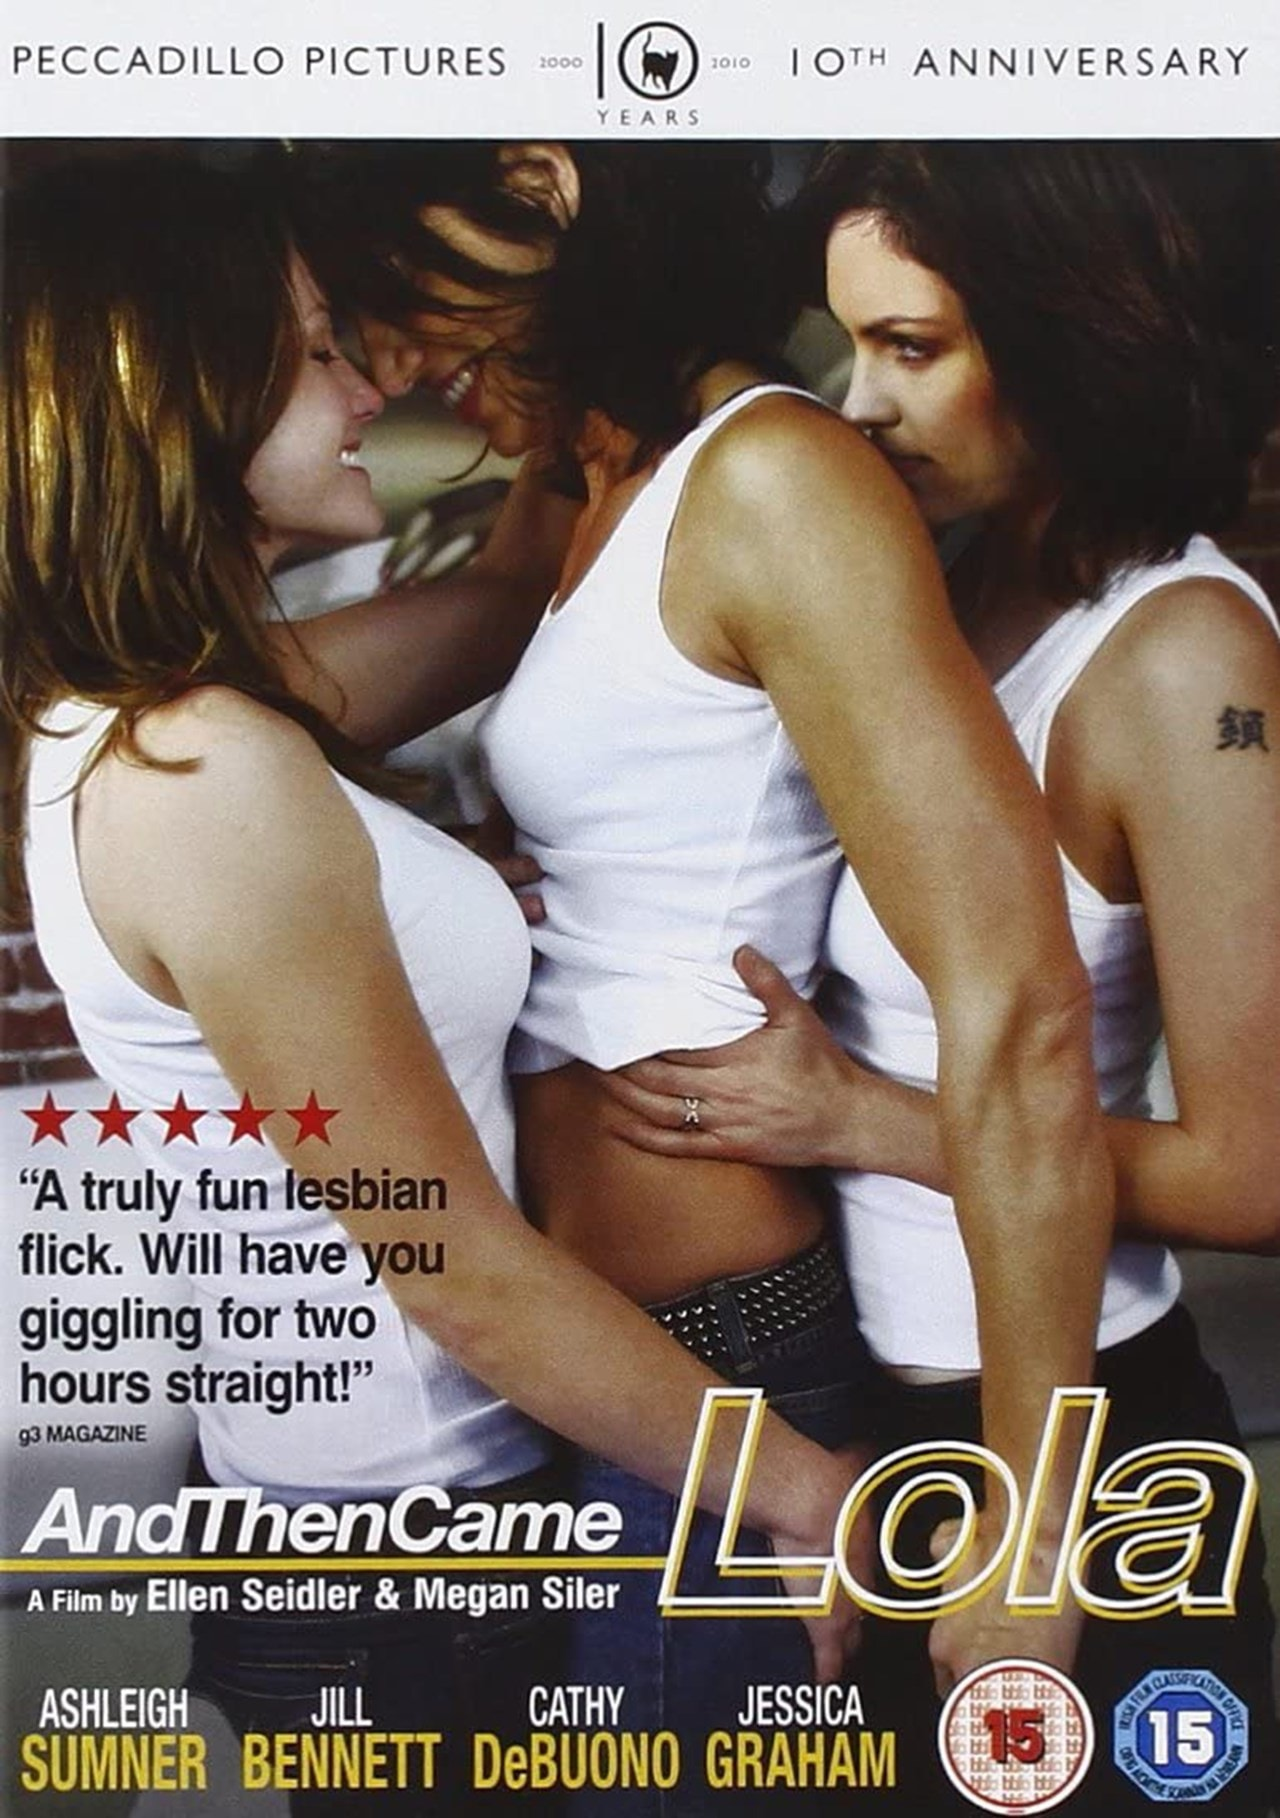 And Then Came Lola - 1